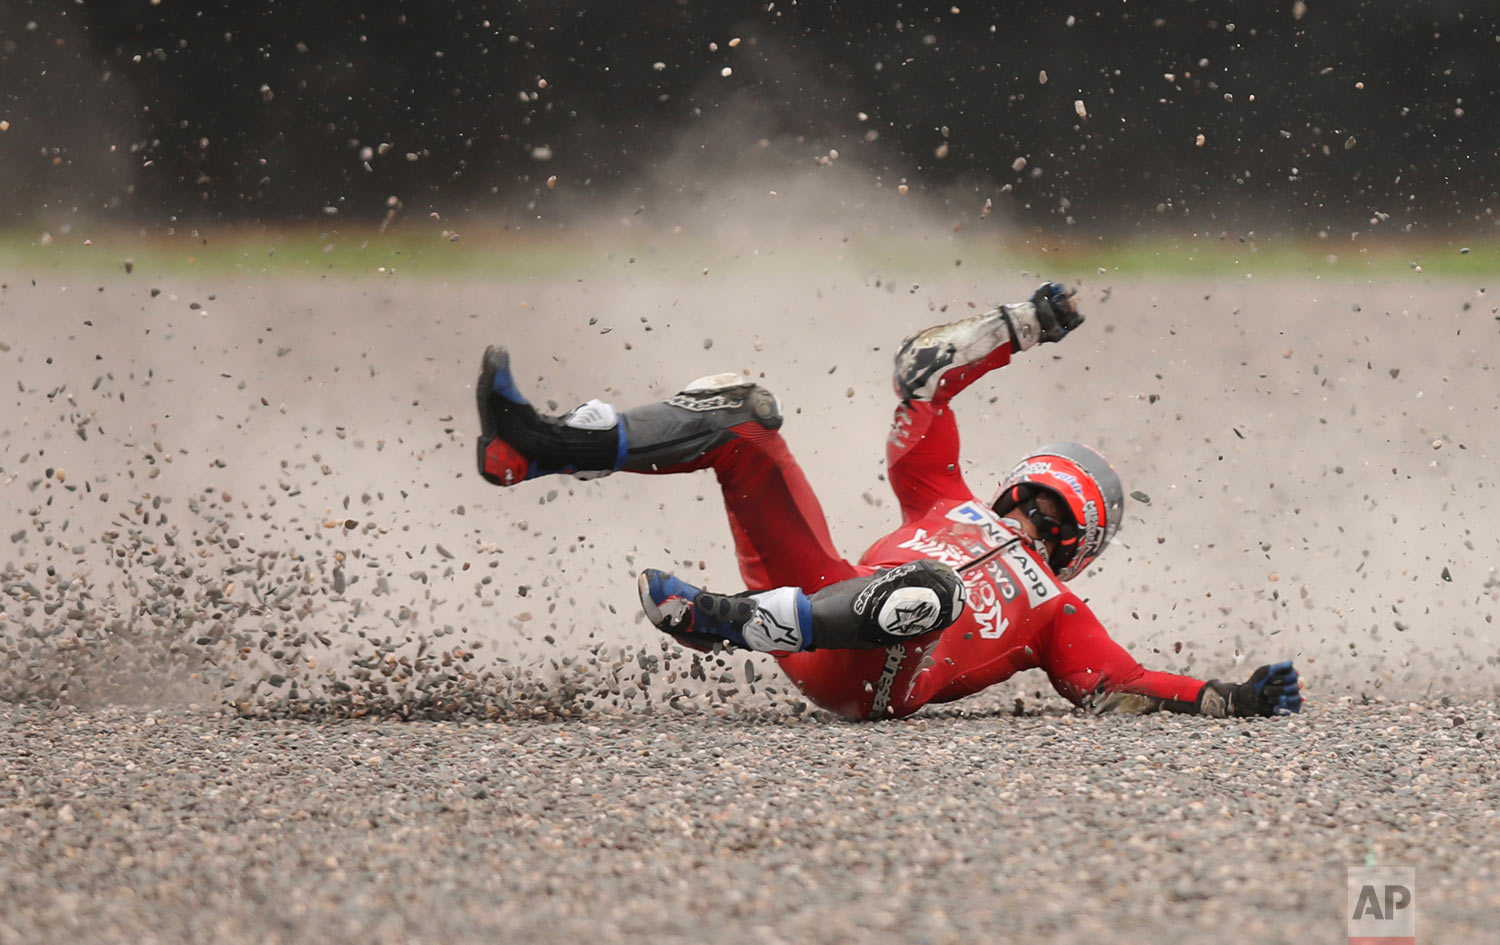 In this March 30, 2019 photo, Andrea Dovizioso of Italy falls from his bike during a Moto GP free practice run at the circuit in Termas de Rio Hondo, Argentina. Despite the fall Dovizioso raced in the third pole position on Sunday. (AP Photo/Nicolas Aguilera)